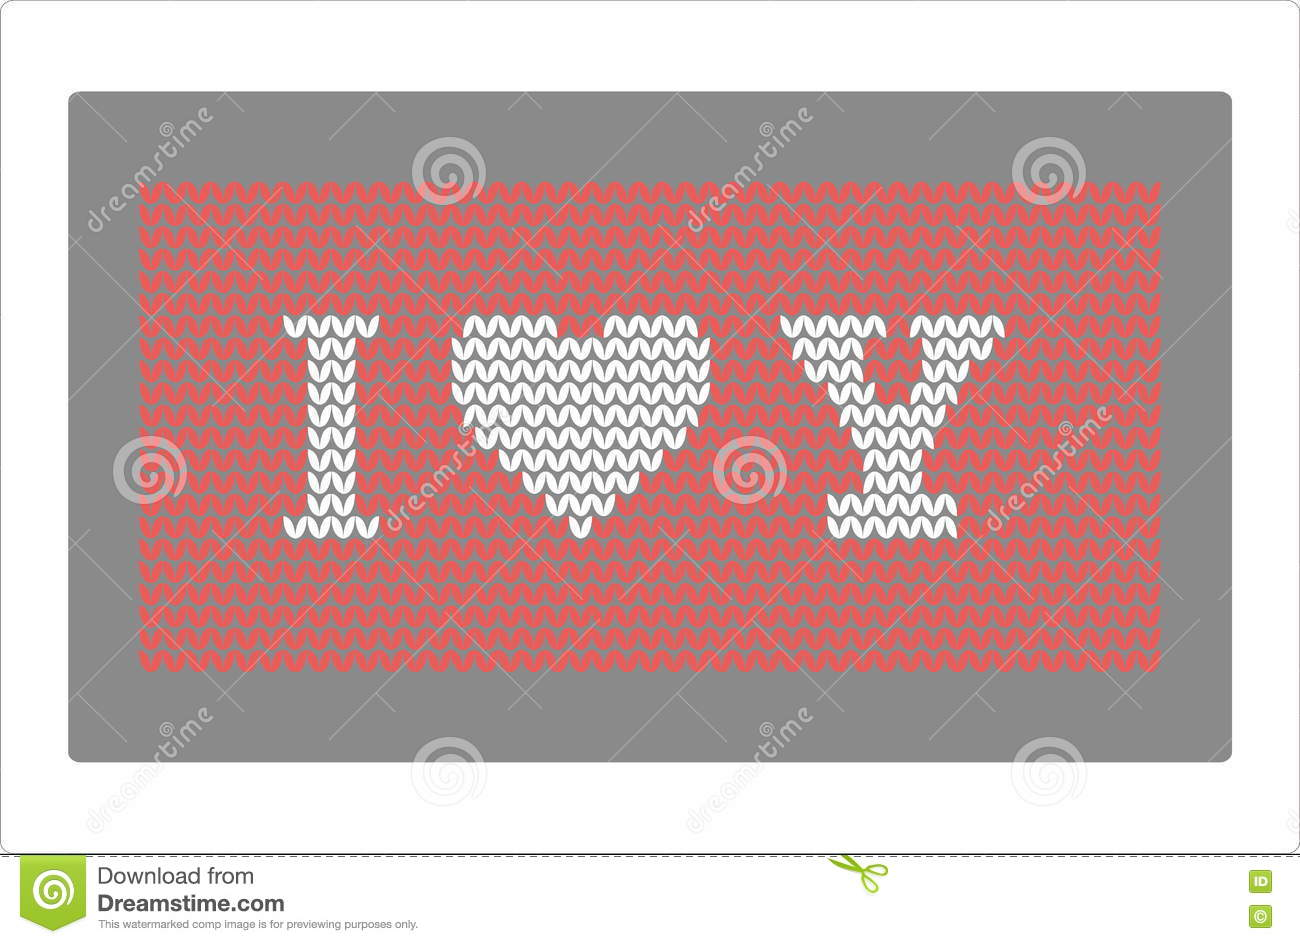 Knitting Pattern I Love You Stock Vector - Illustration of craft ...